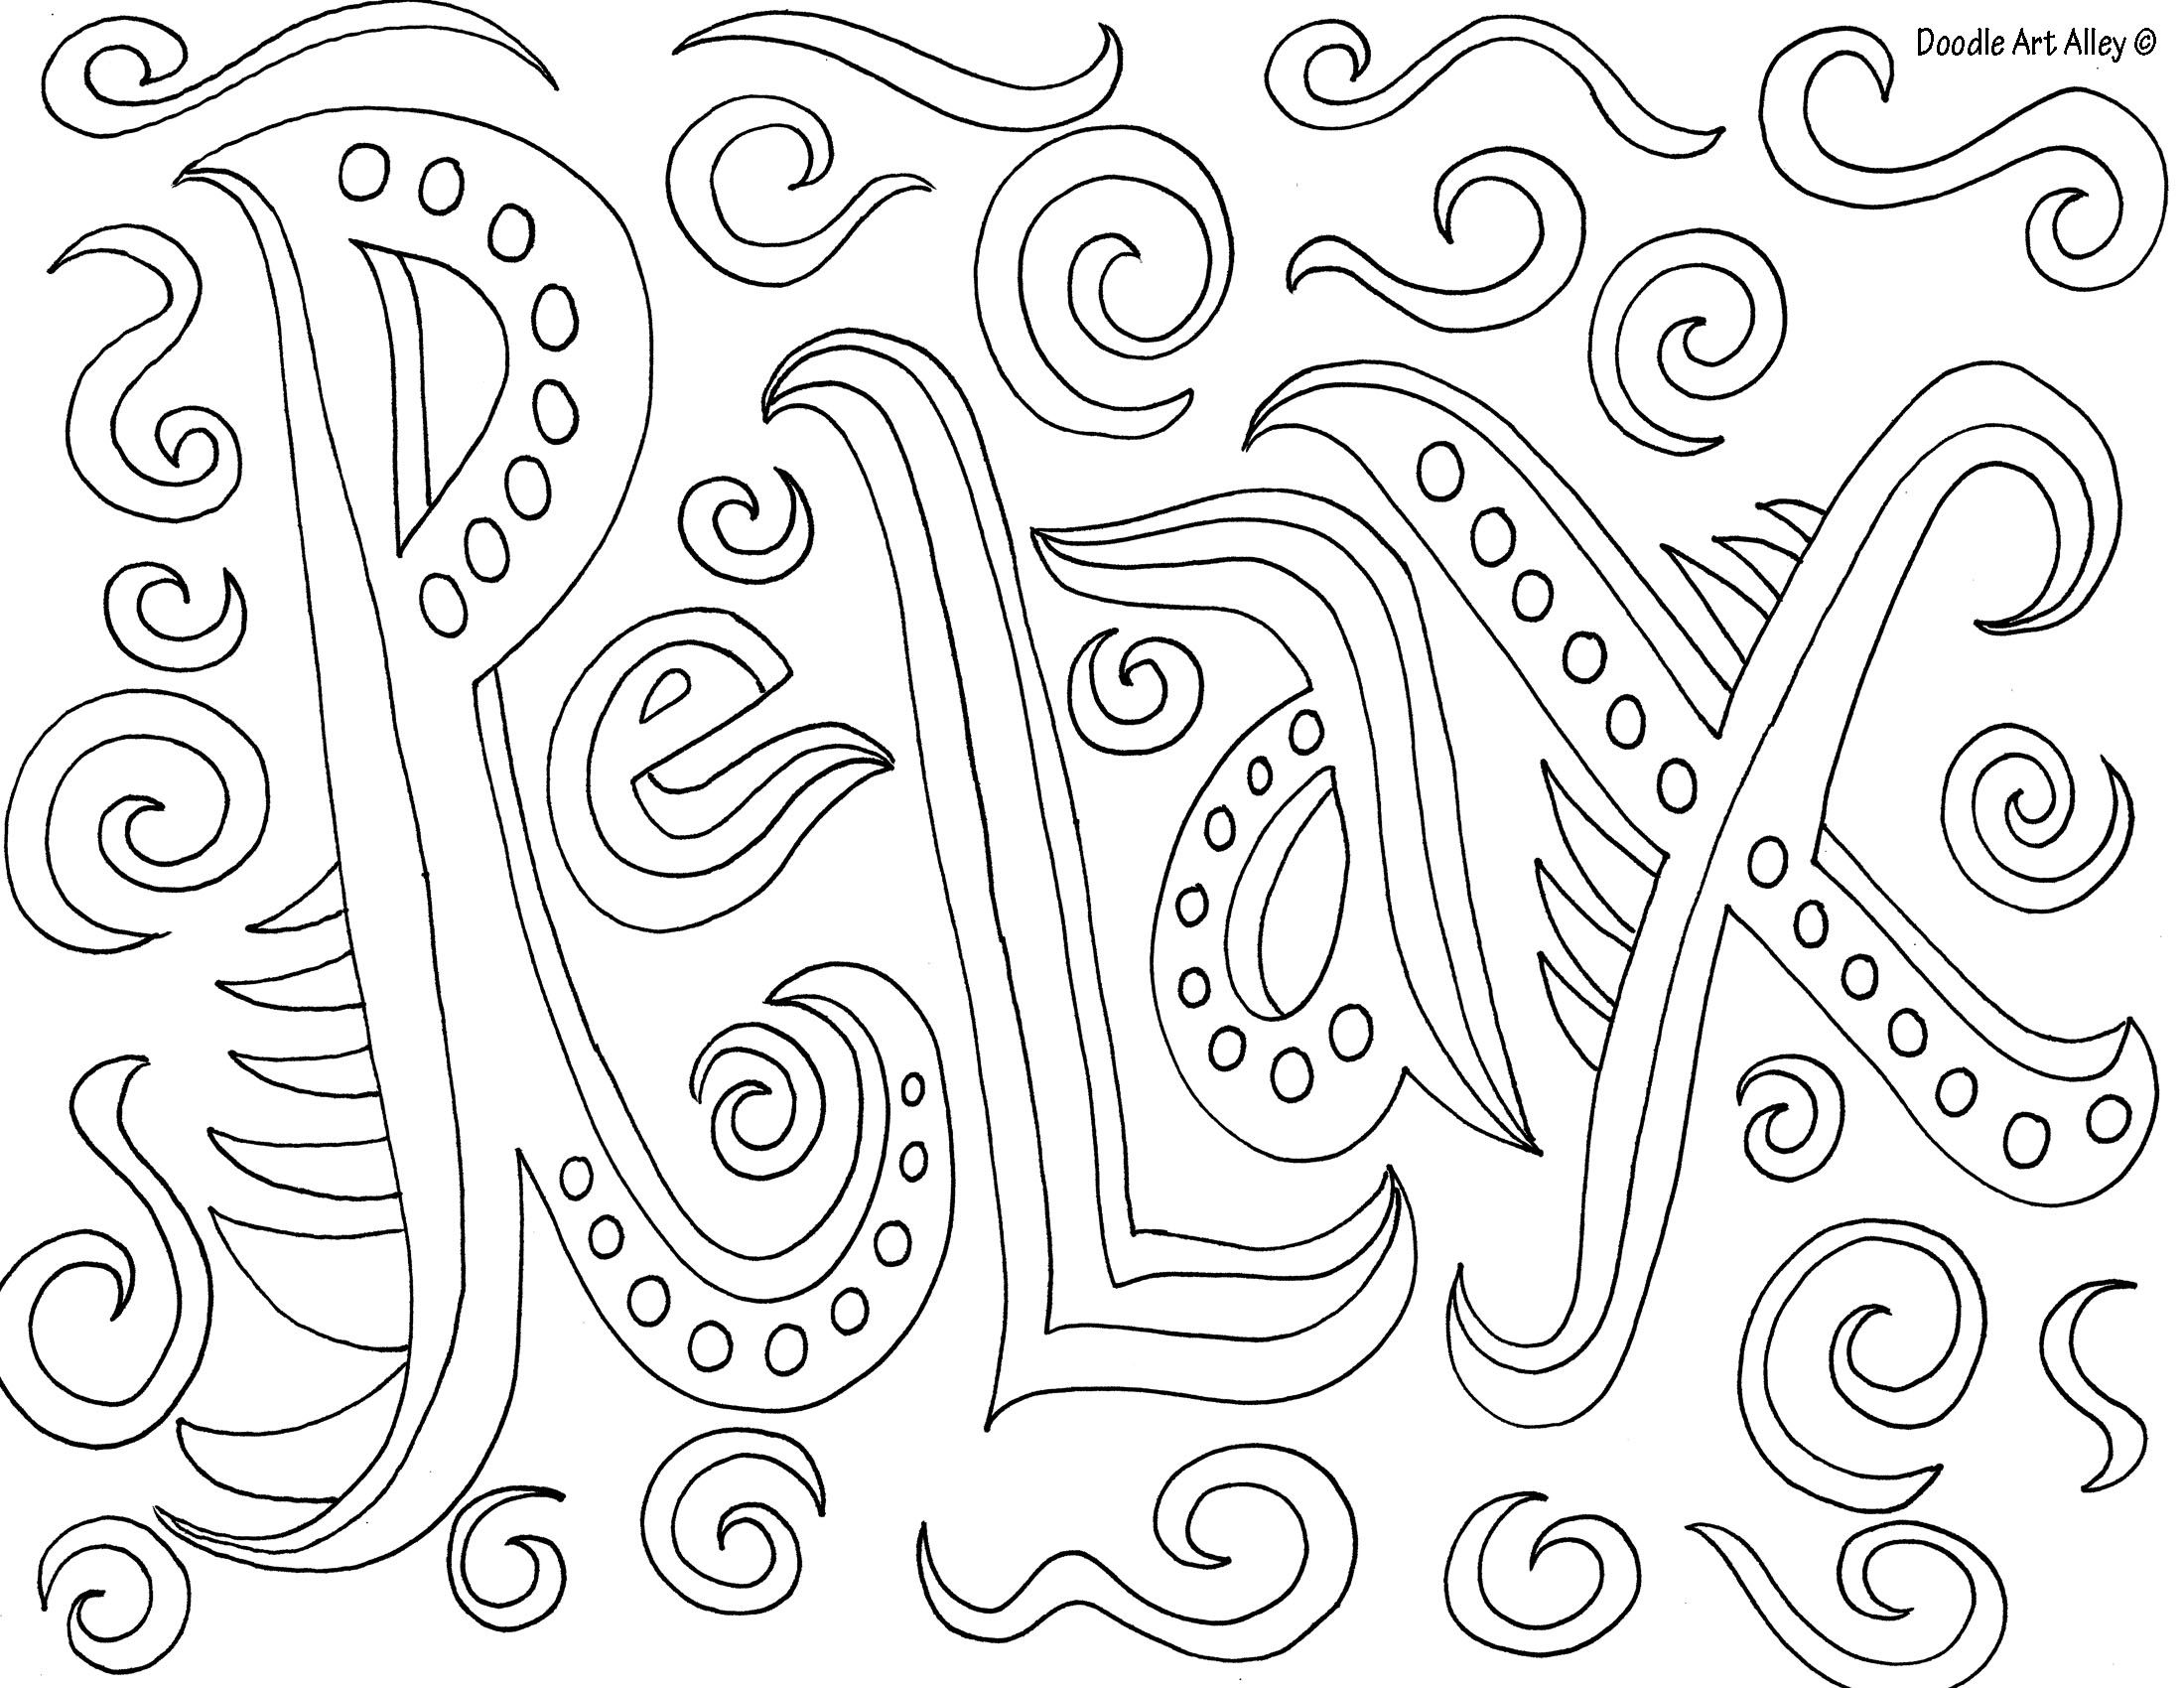 http wwwdoodleartalley Colouring Pages Pinterest